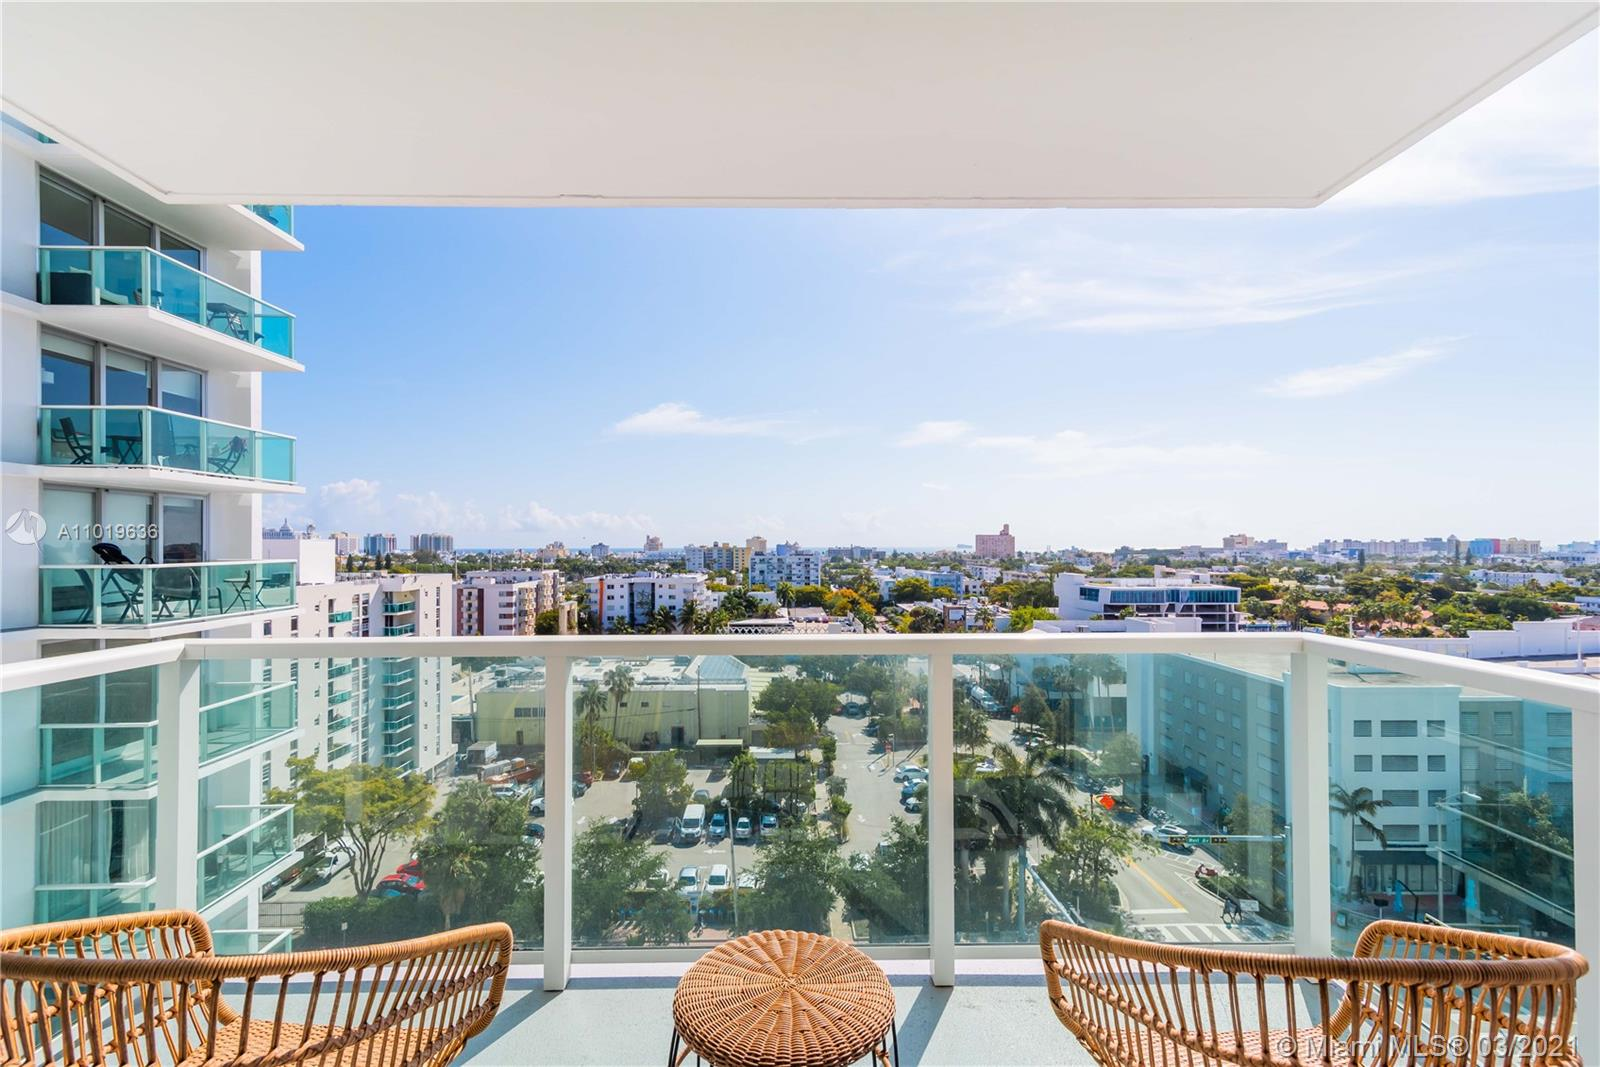 Mirador South #1030 - 1000 West Ave #1030, Miami Beach, FL 33139